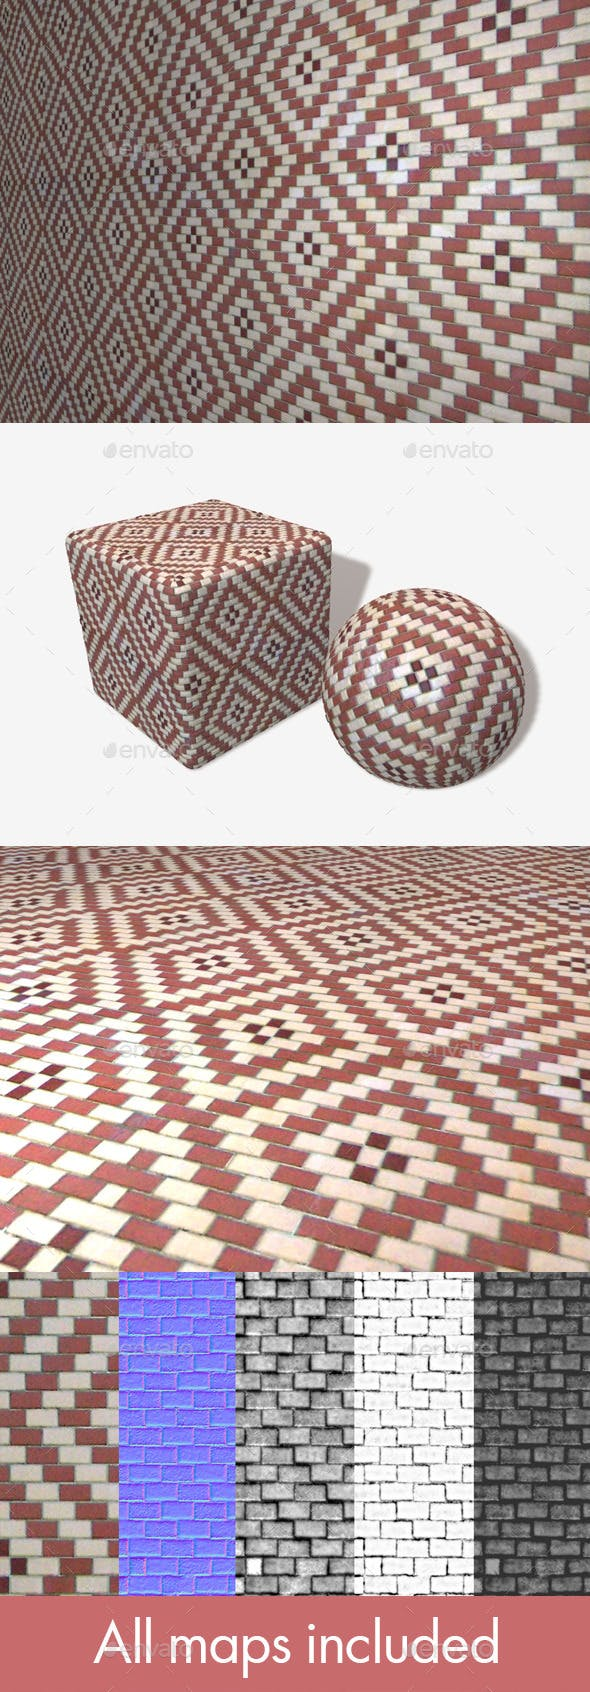 Brick Pattern Seamless Texture - 3DOcean Item for Sale